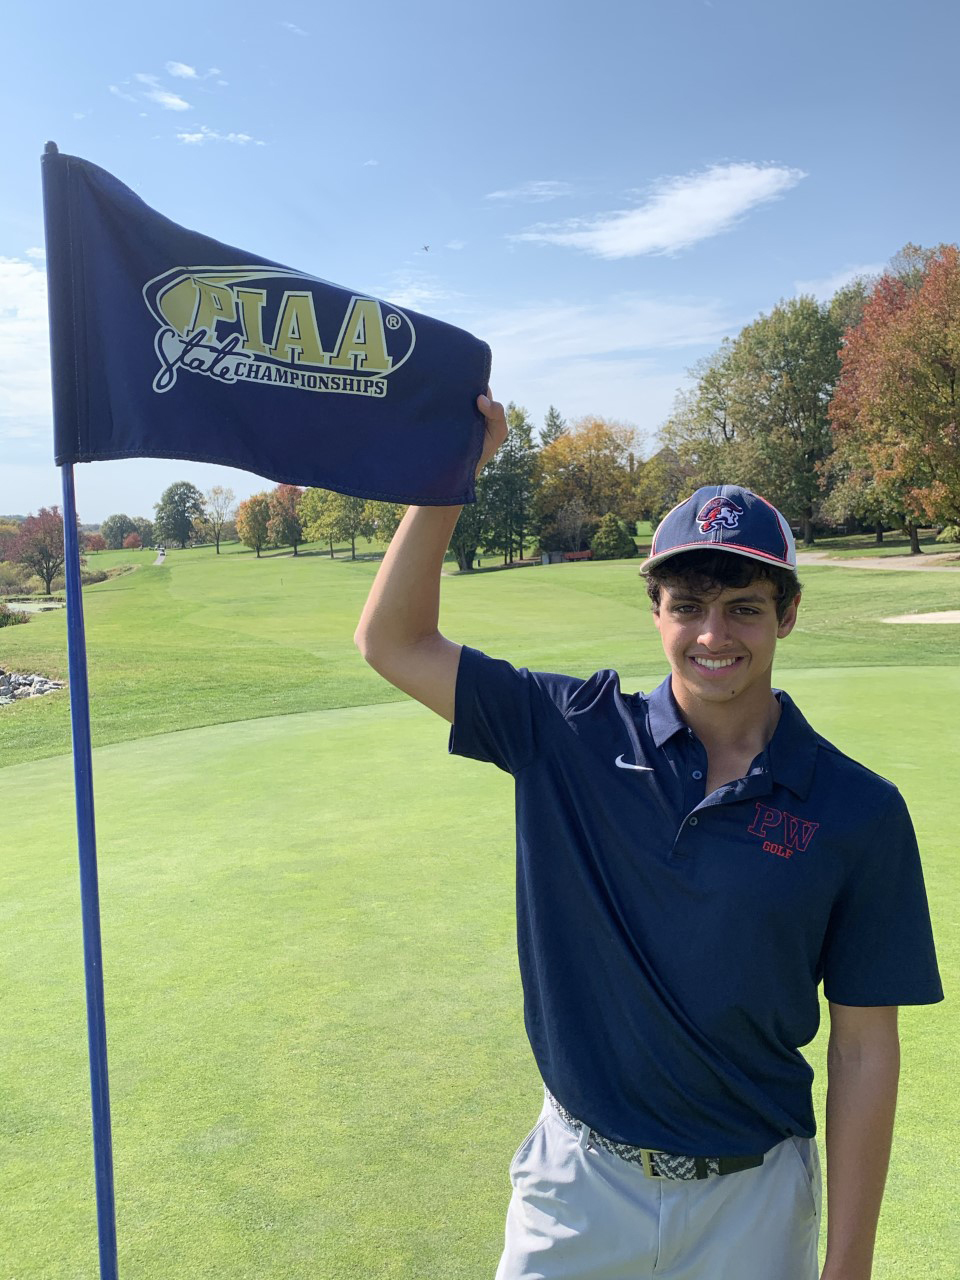 Boy on golf course holding PIAA State Championships flag